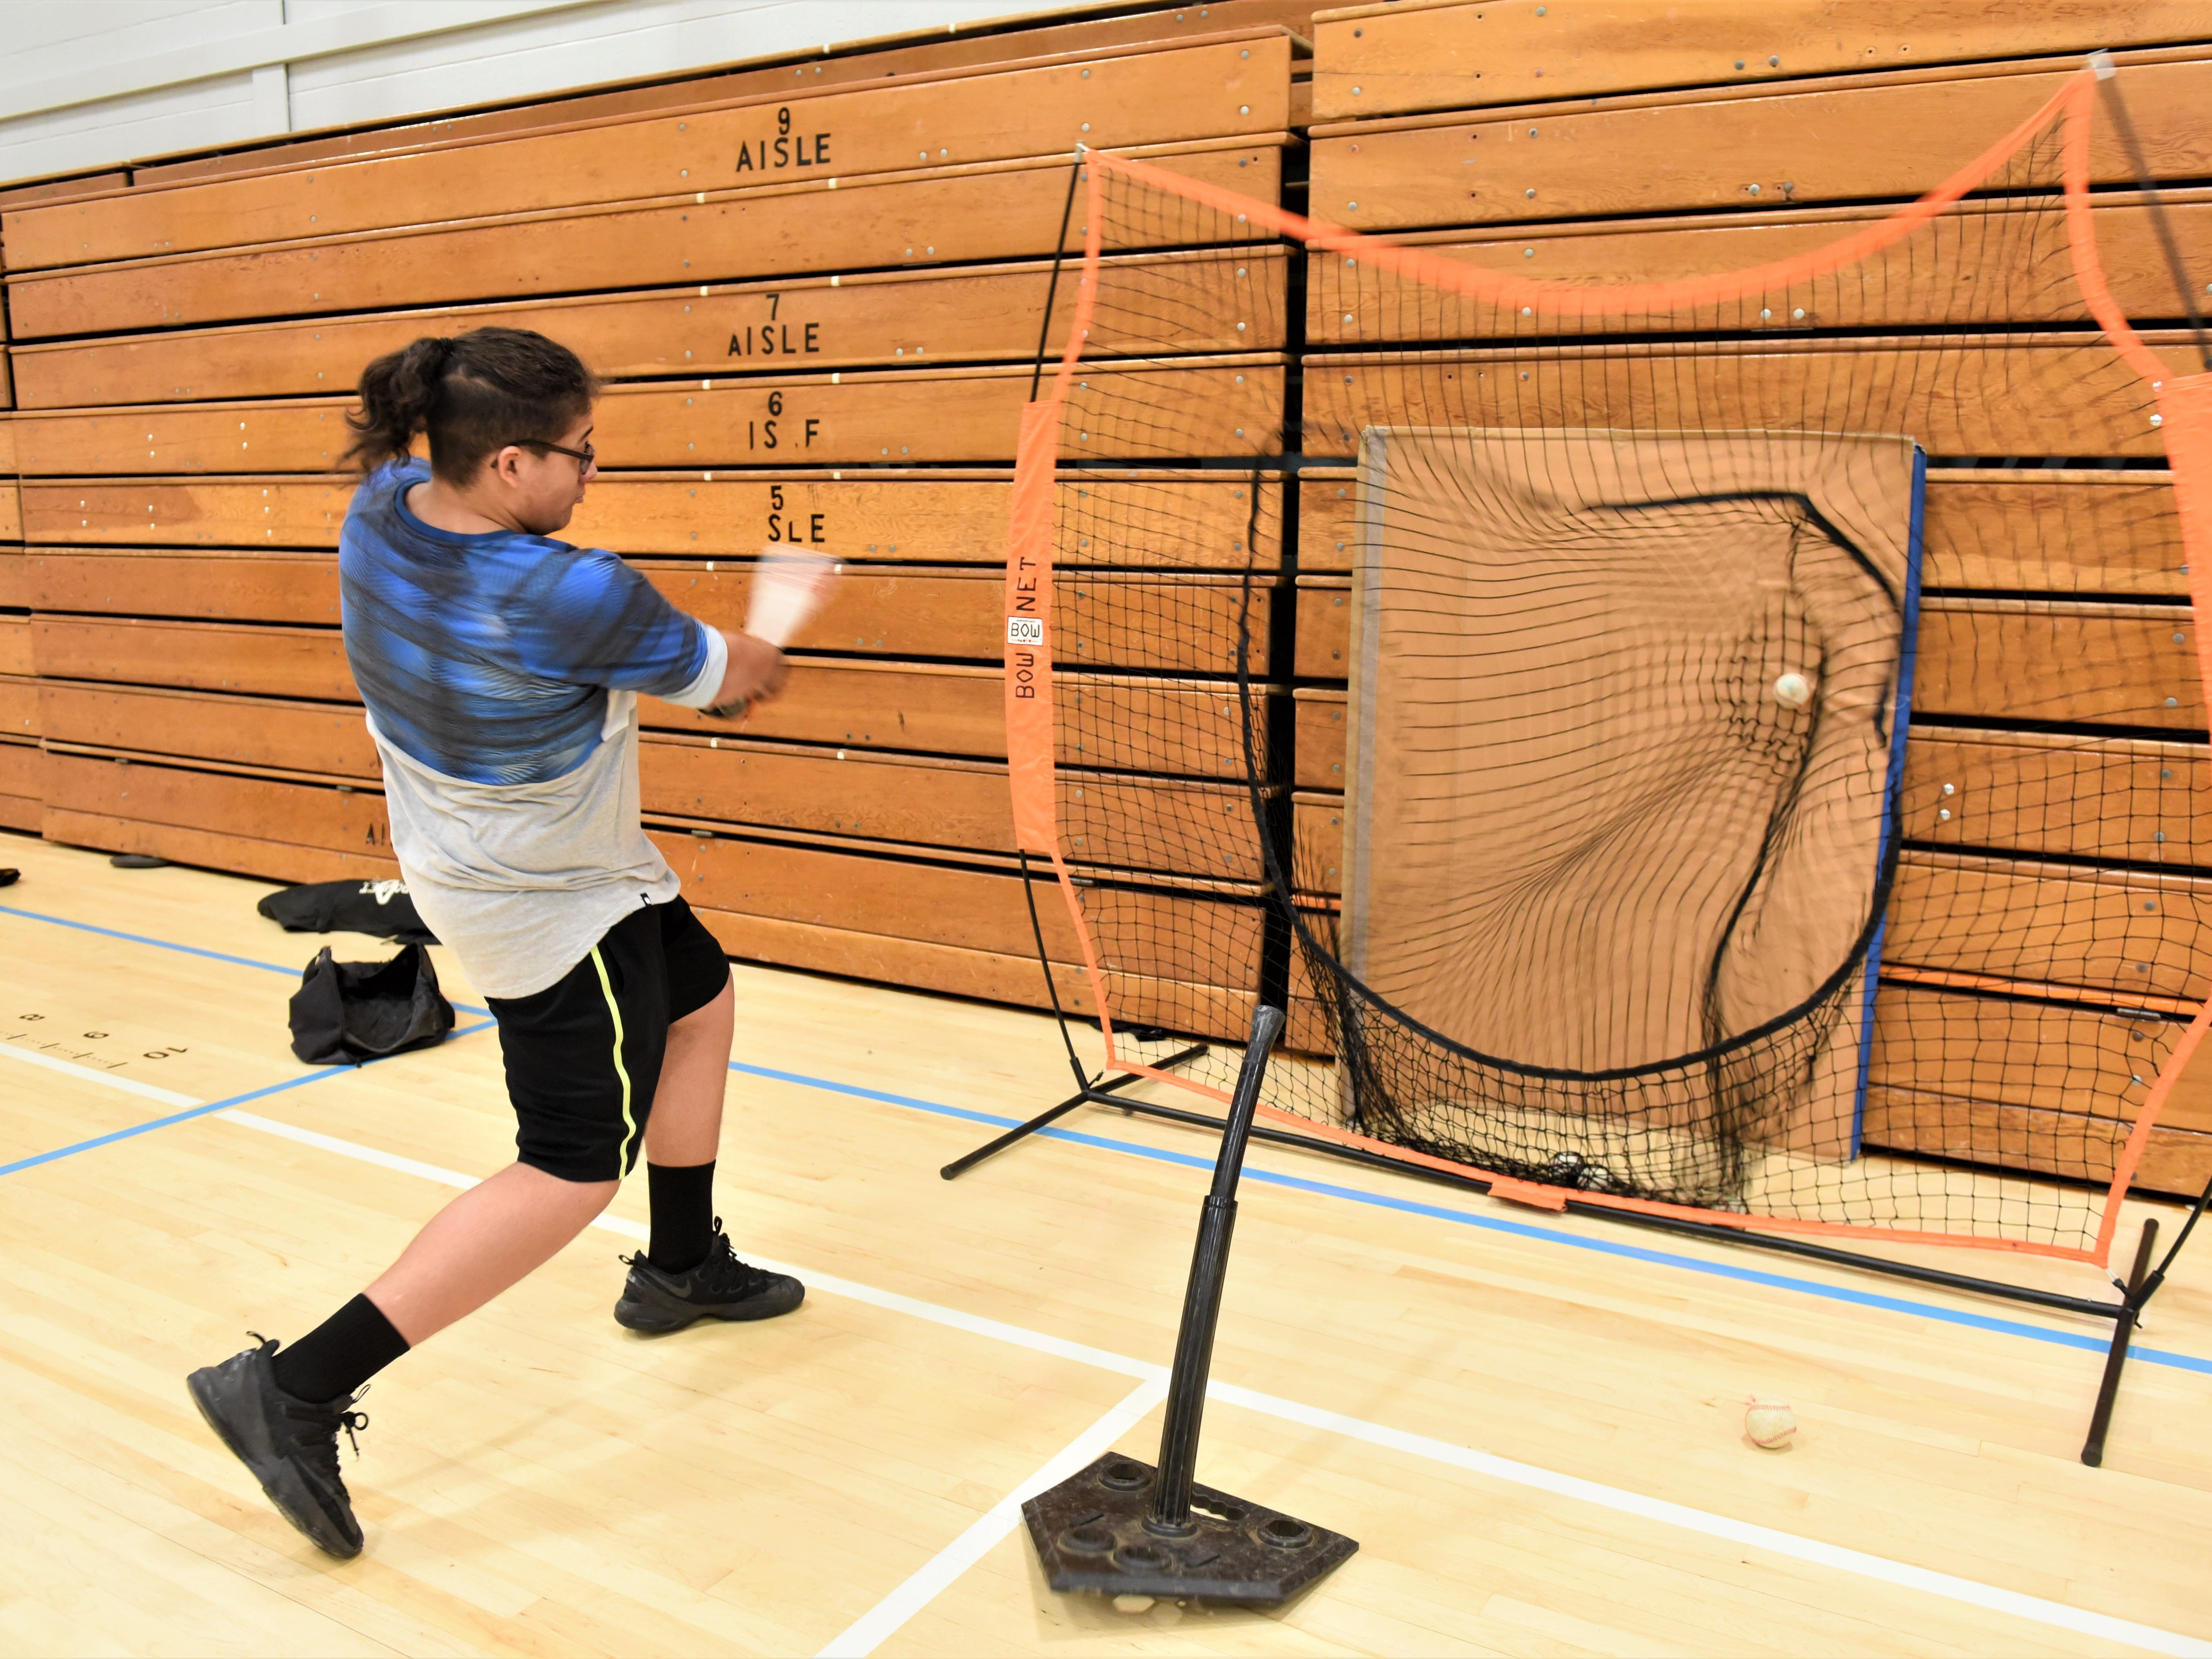 Hanover Senior High School baseball team practices indoors on first day of spring sports on March 4, 2019.